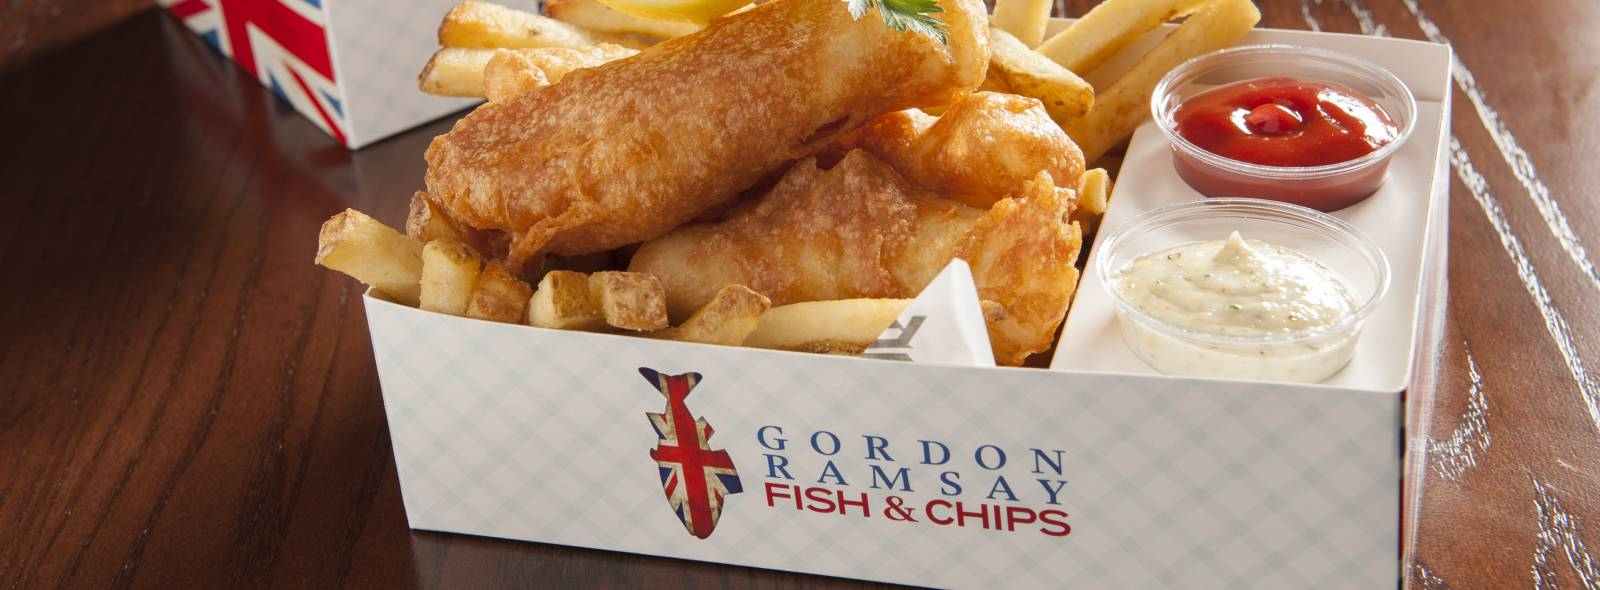 Where can i get fish and chips near me for Best fish and chips near me